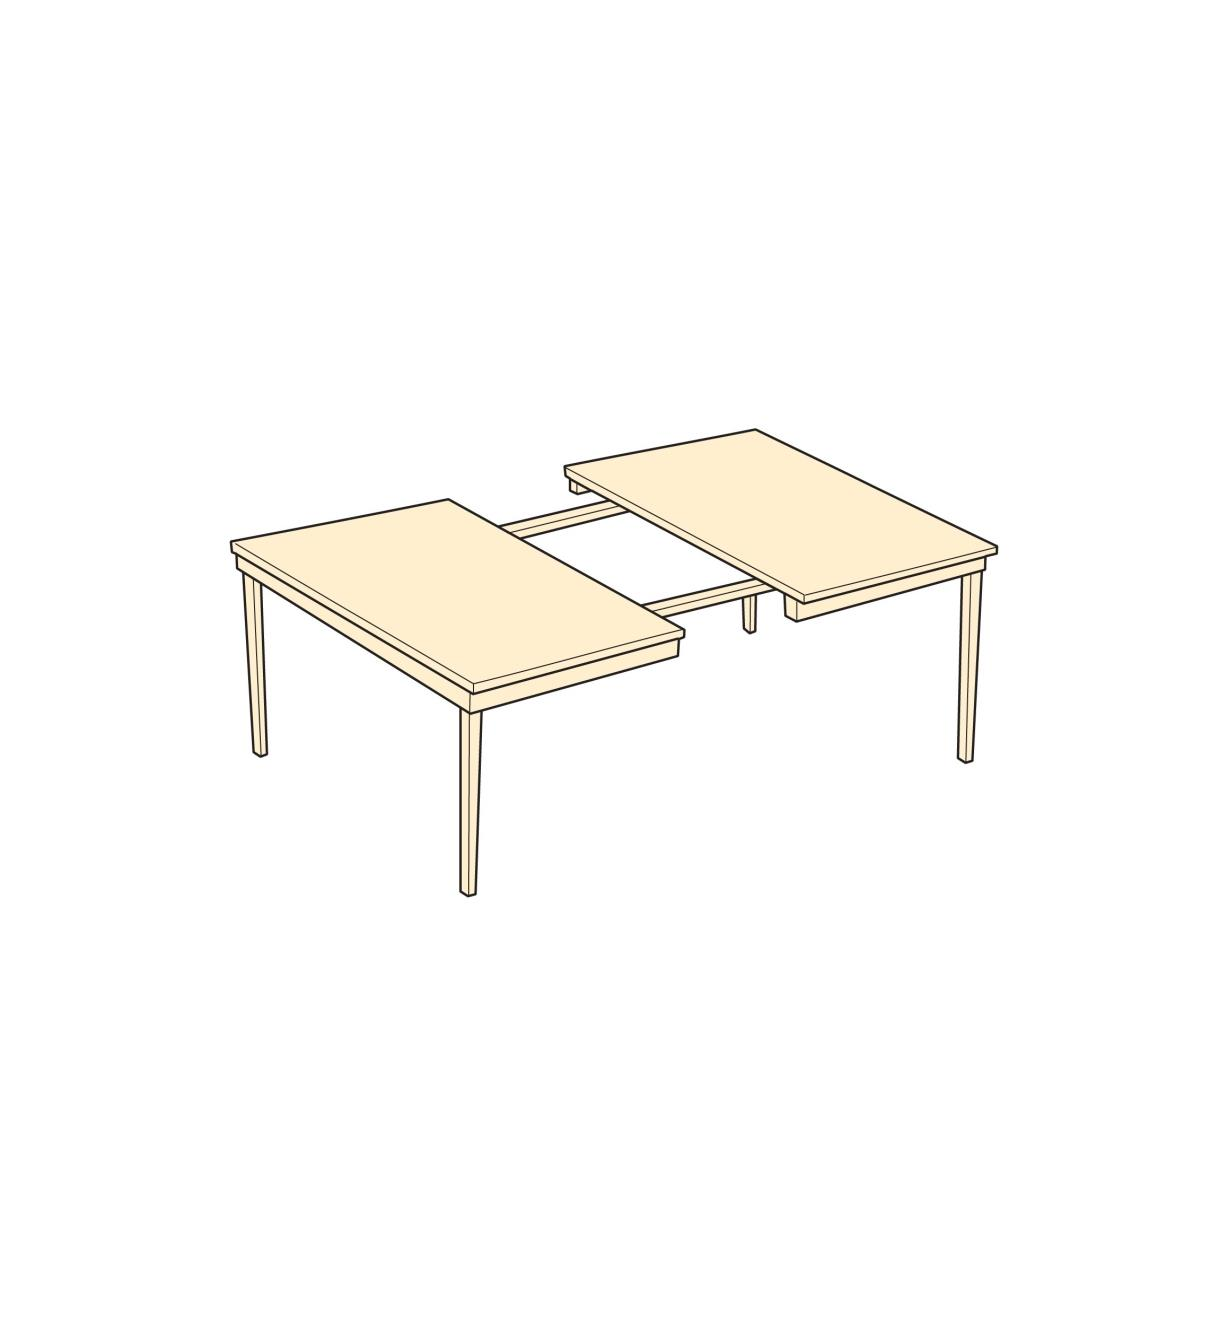 Diagram example of four-leg table with extenders